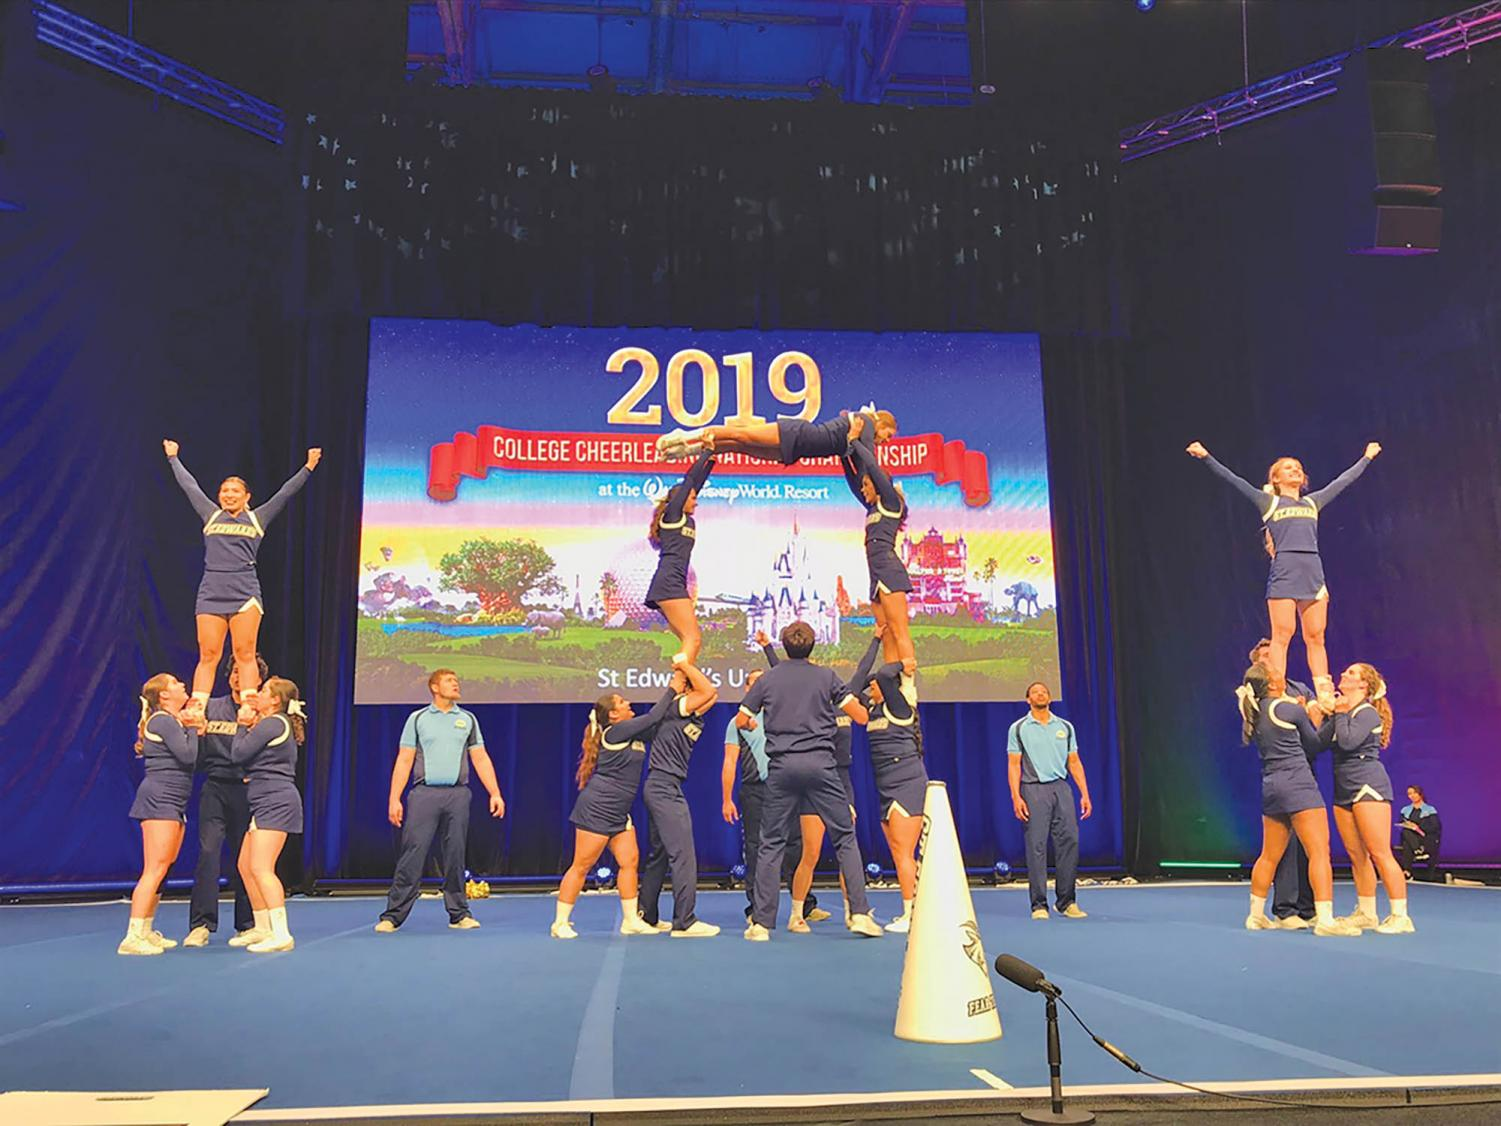 The SEU cheer squad during their National's performance.